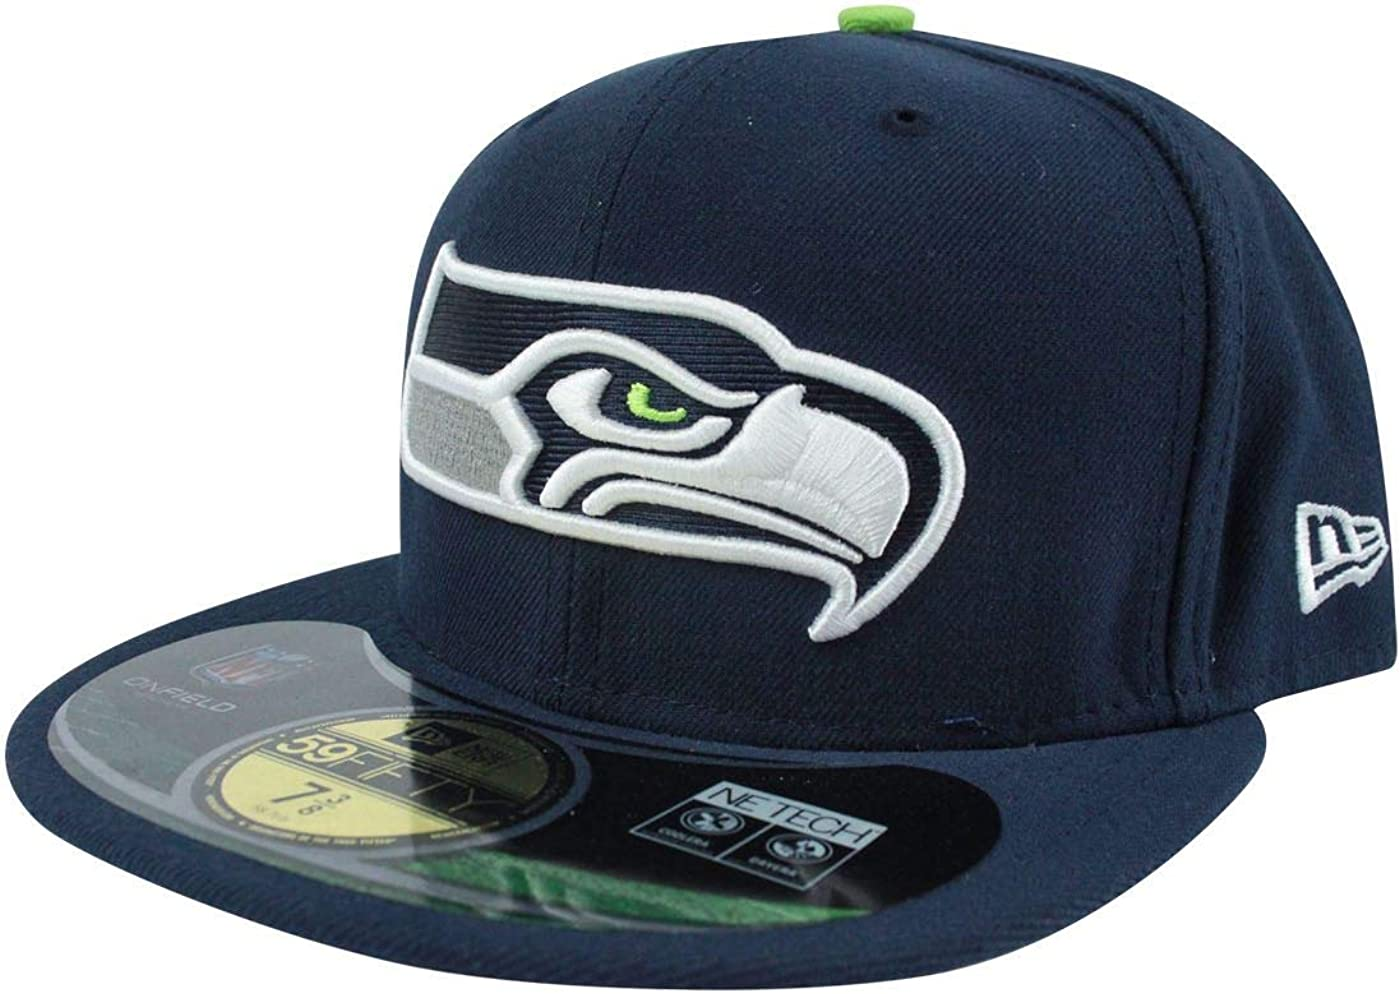 SEATTLE SEAHAWKS BLACK NEW ERA 59FIFTY FITTED BASEBALL NFL CAP HAT